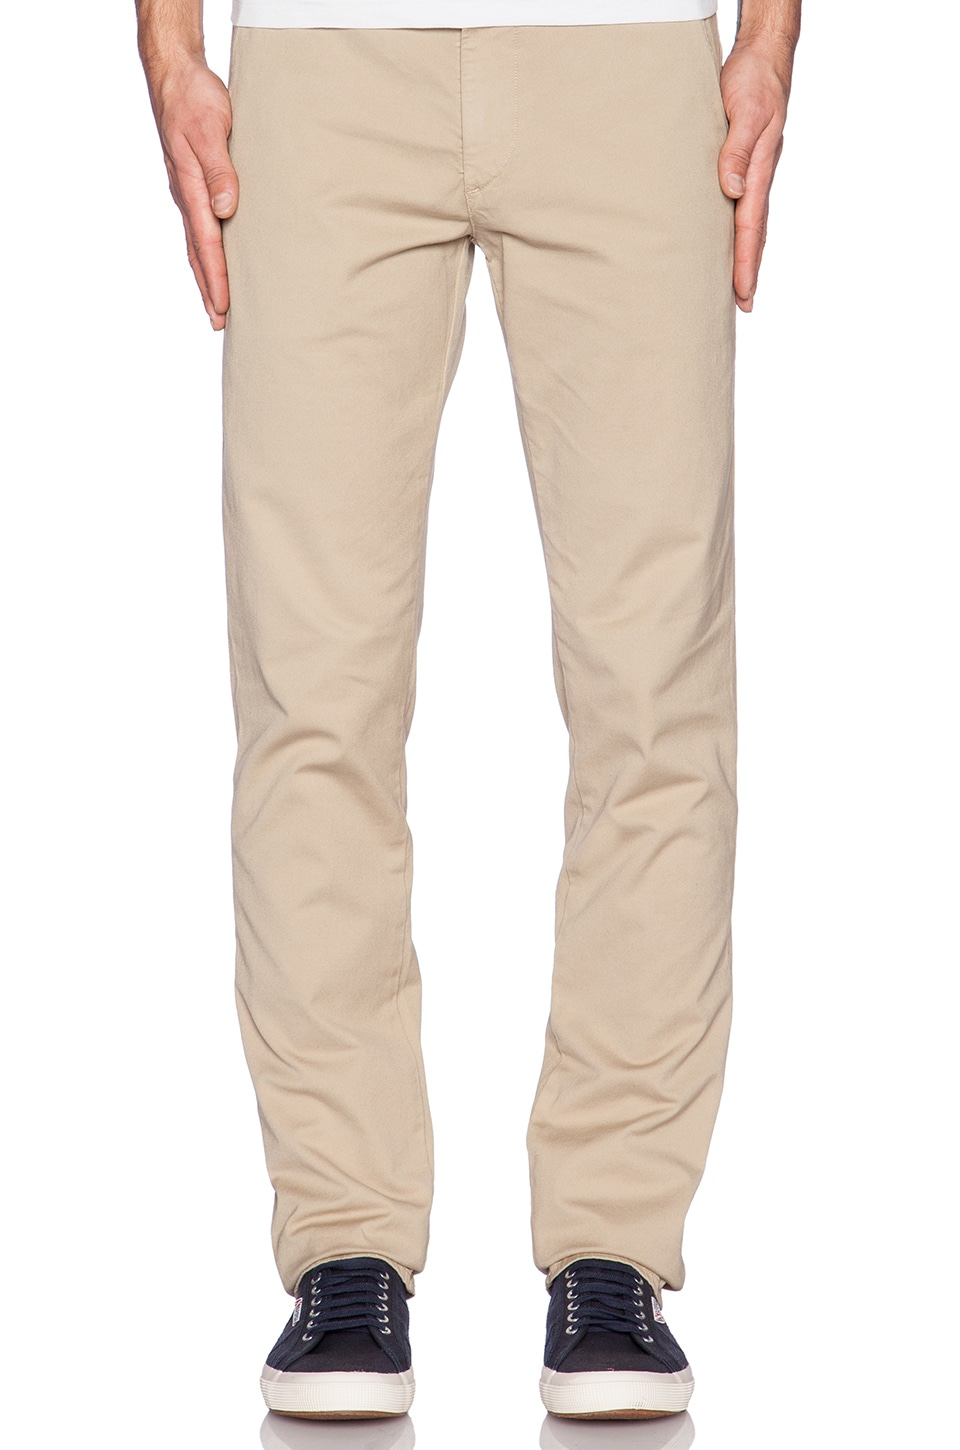 AG Adriano Goldschmied The Slim Khaki in Light Khaki